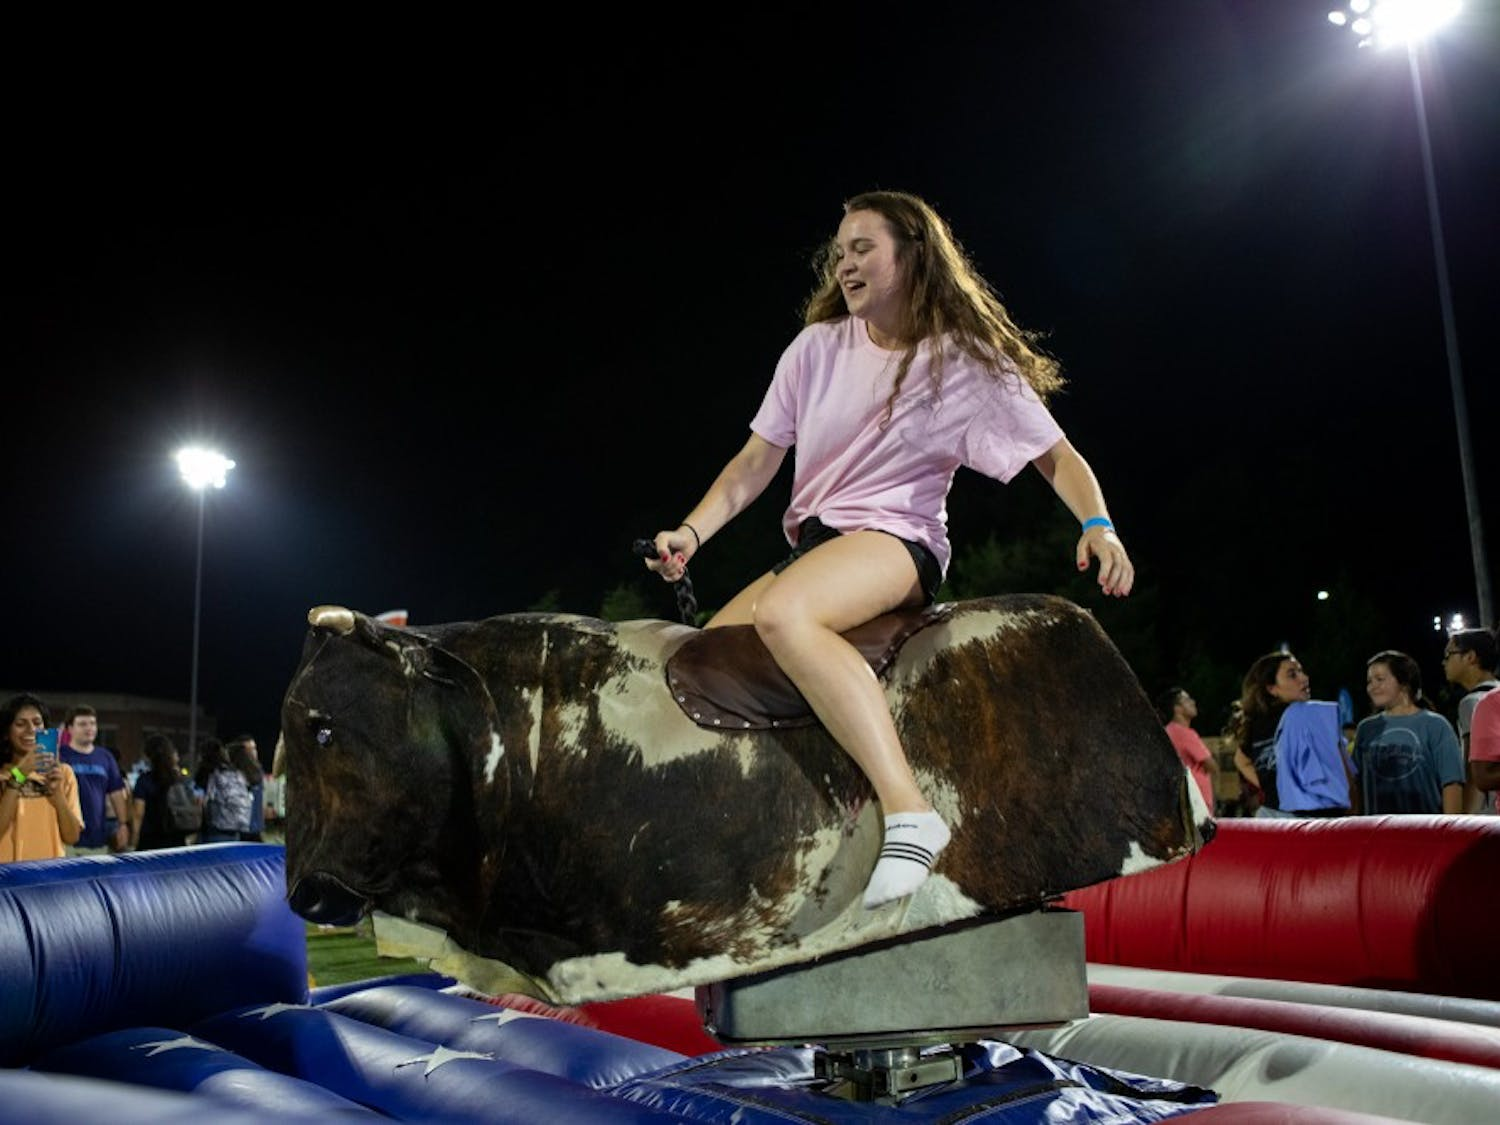 Catriona Dick, a junior psychology major, rides the mechanical bull during Fallfest on Hooker Fields on the evening of Sunday, August 18 2019.